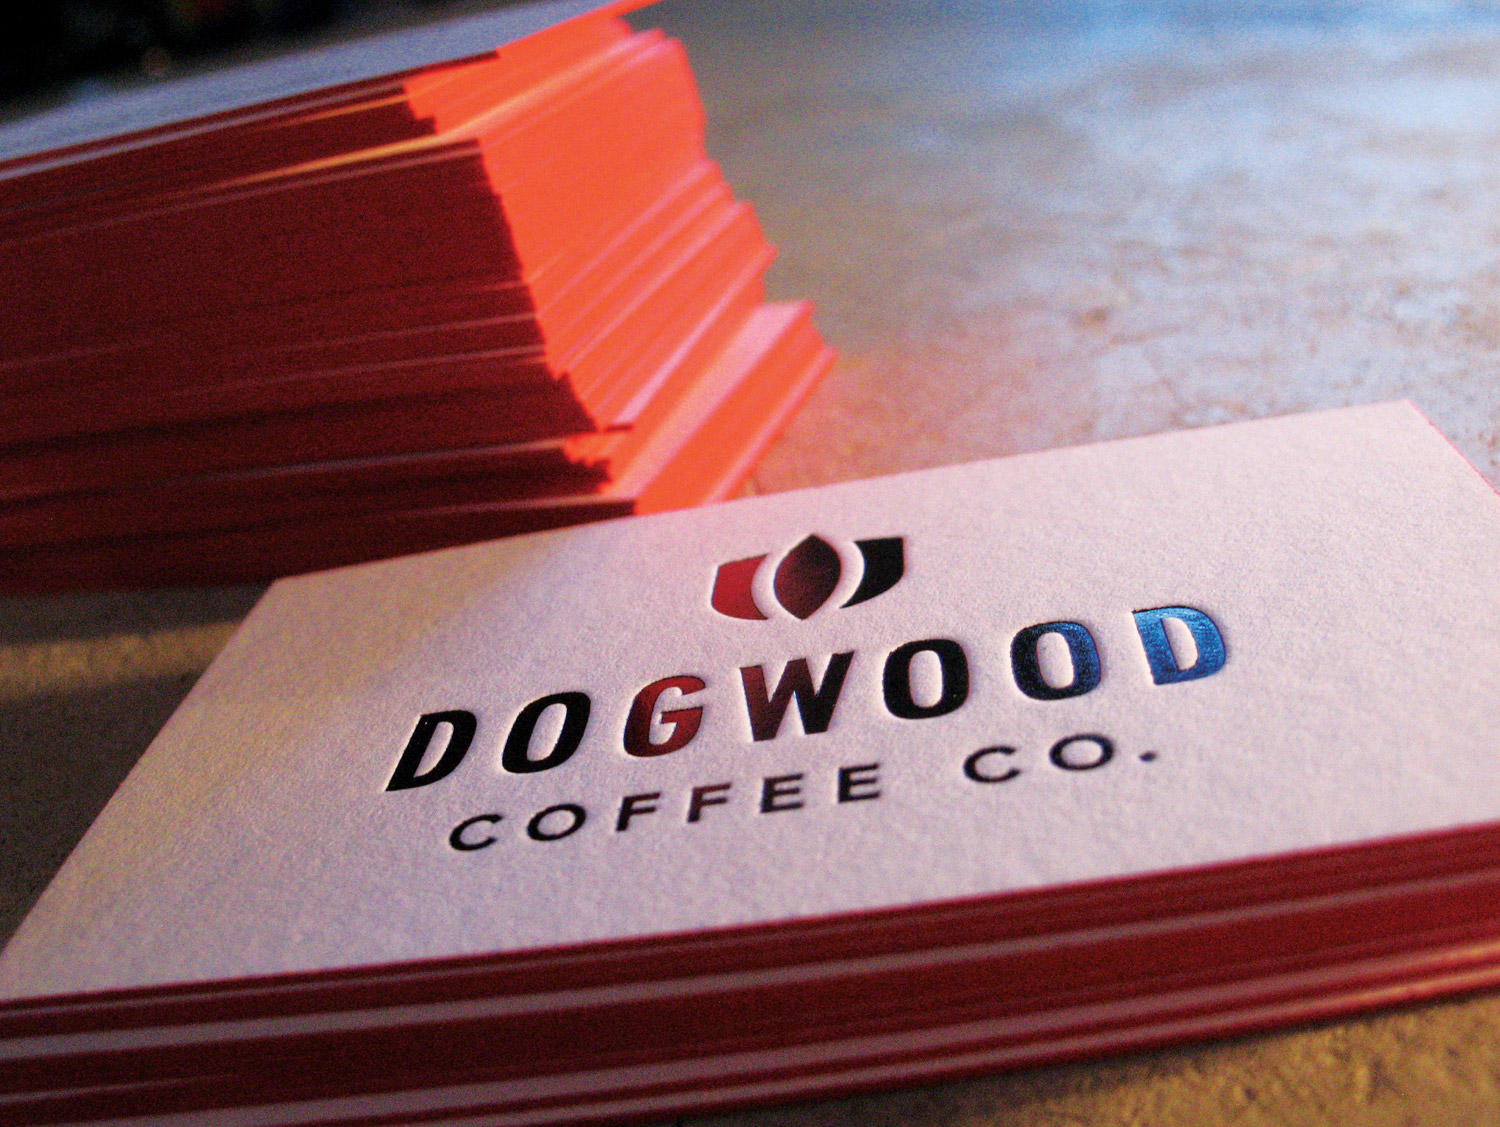 Dogwood-Coffee-Co-print-01.jpg